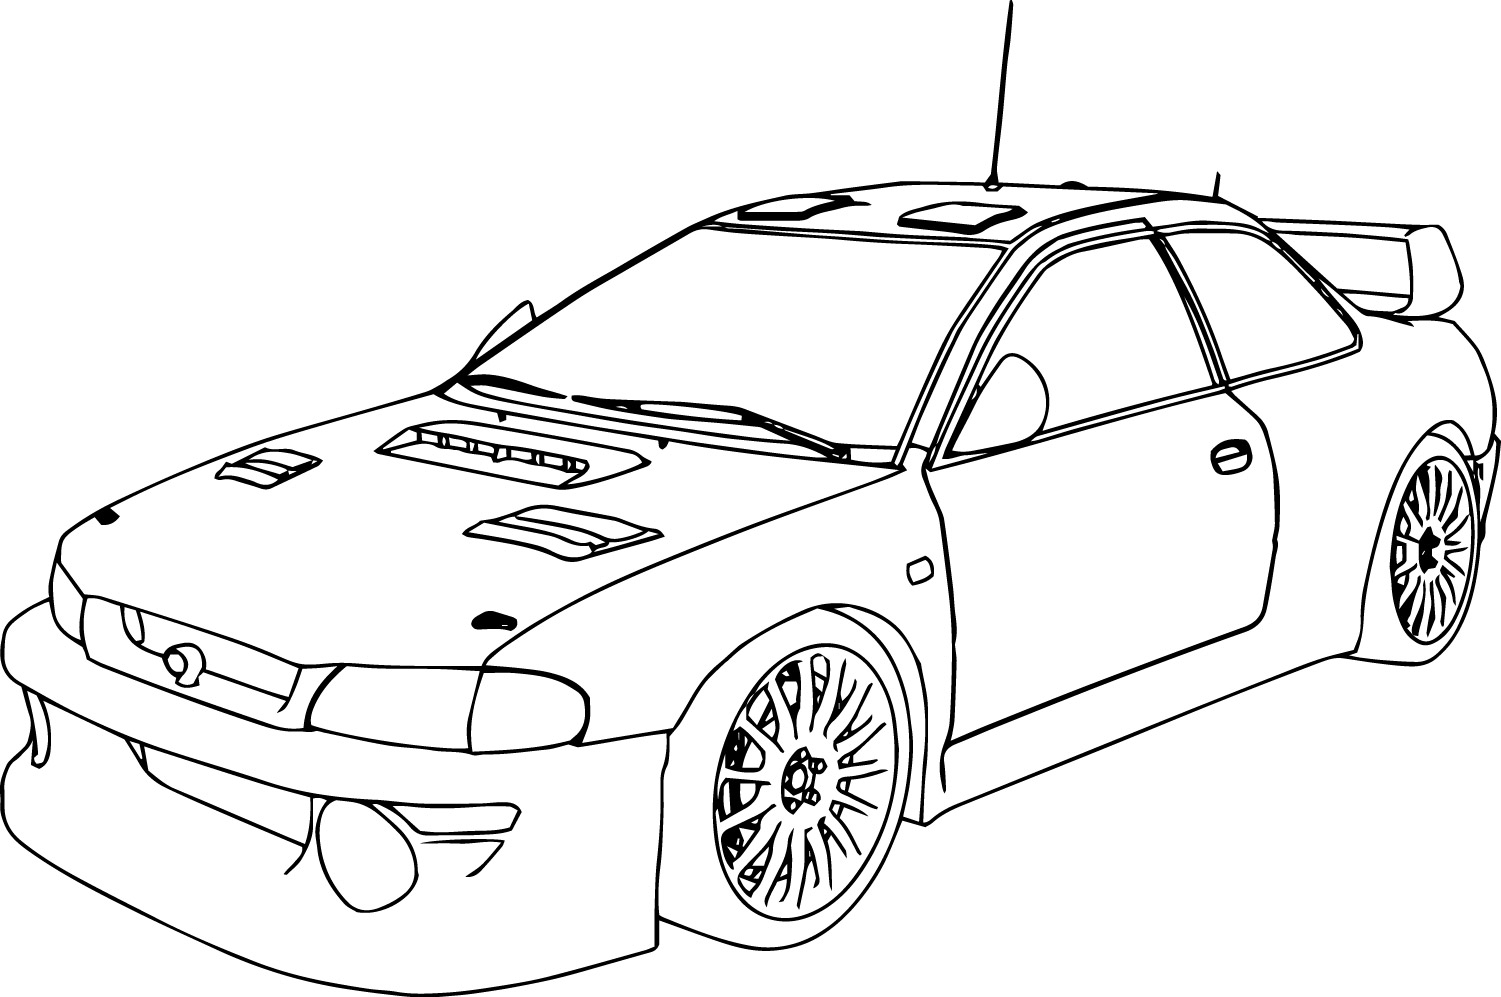 1501x997 Race Car Coloring Pages Rally Car Have Race Car Coloring Pages